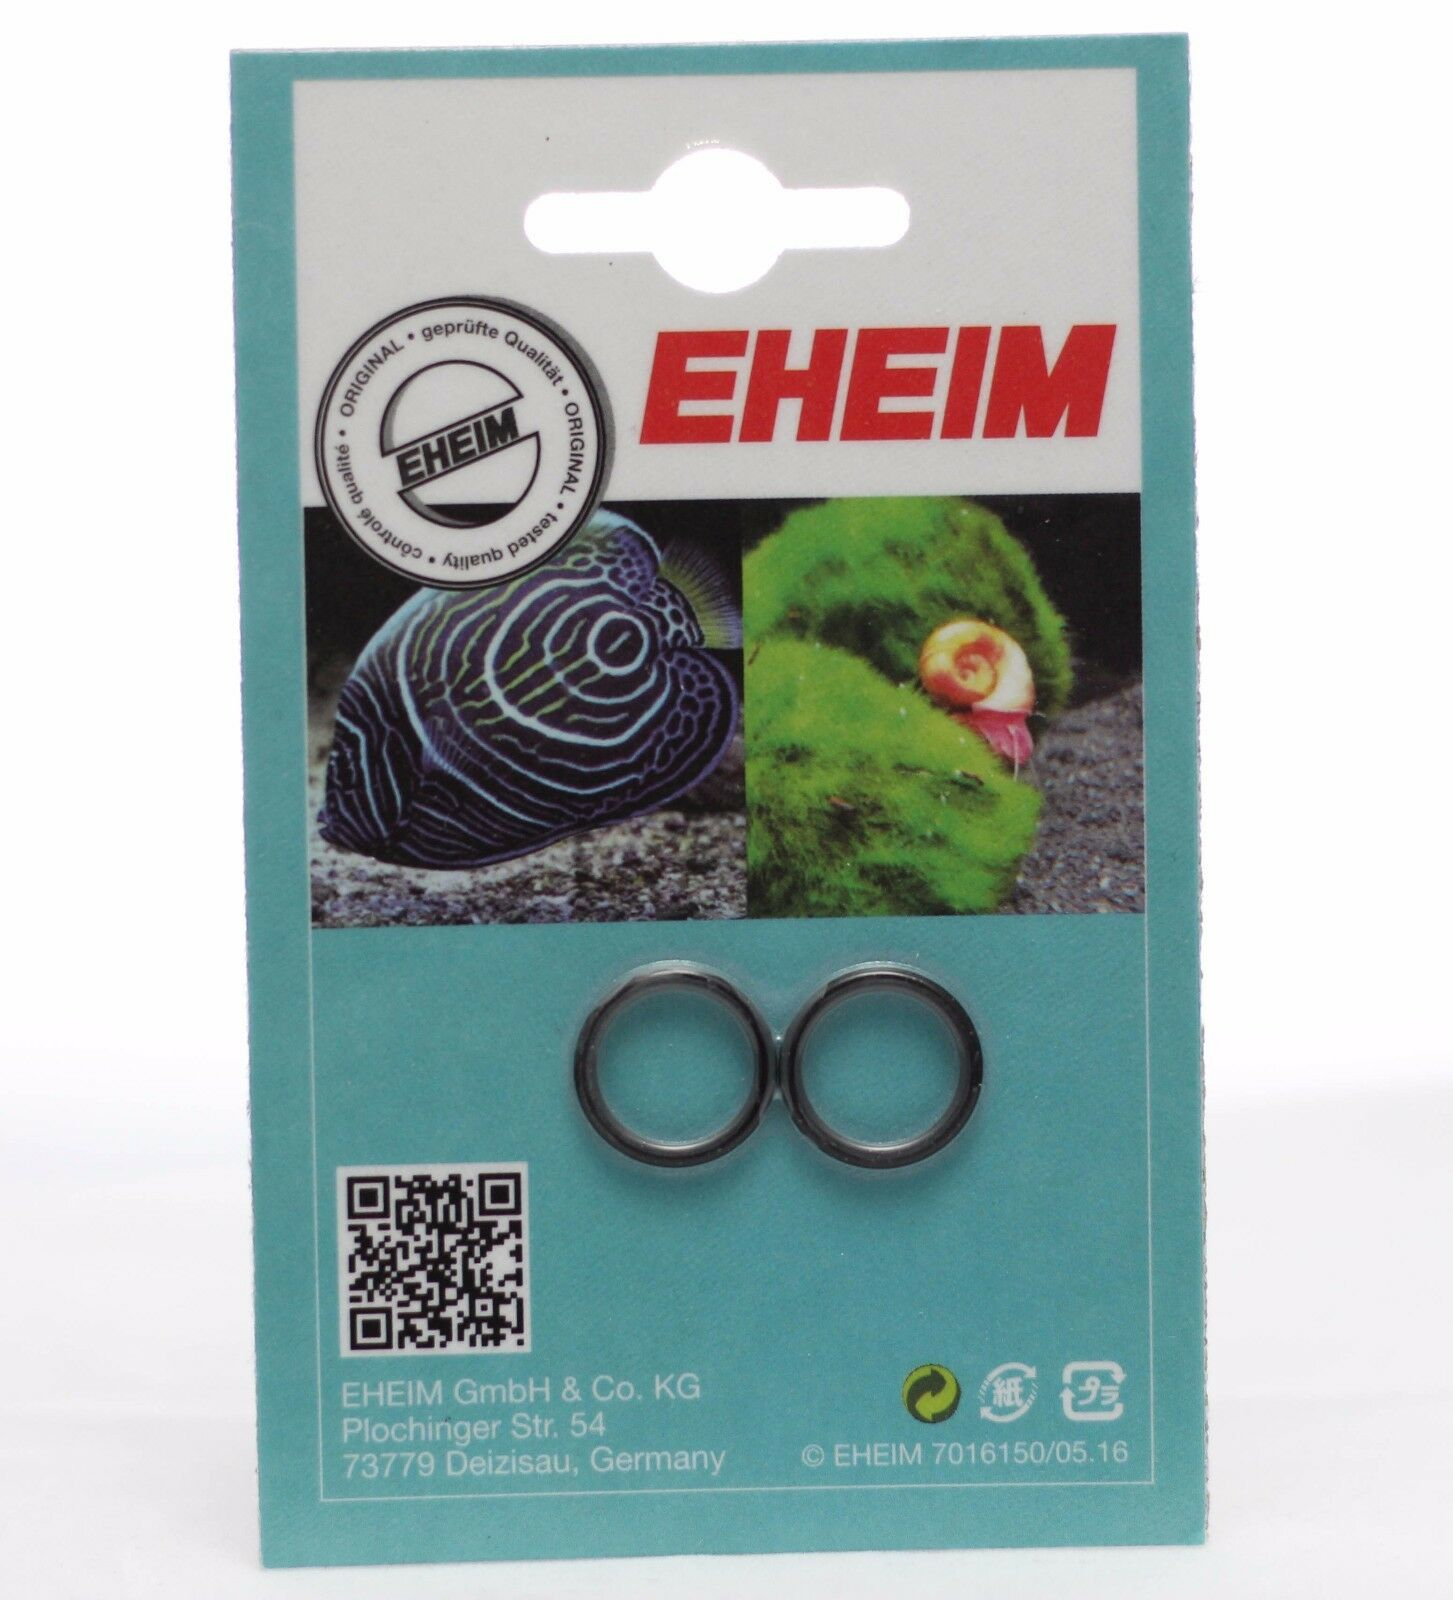 Eheim 7250600 Replacement O Ring. 2211, 2213, 2215, 2217. Pack Of 2.